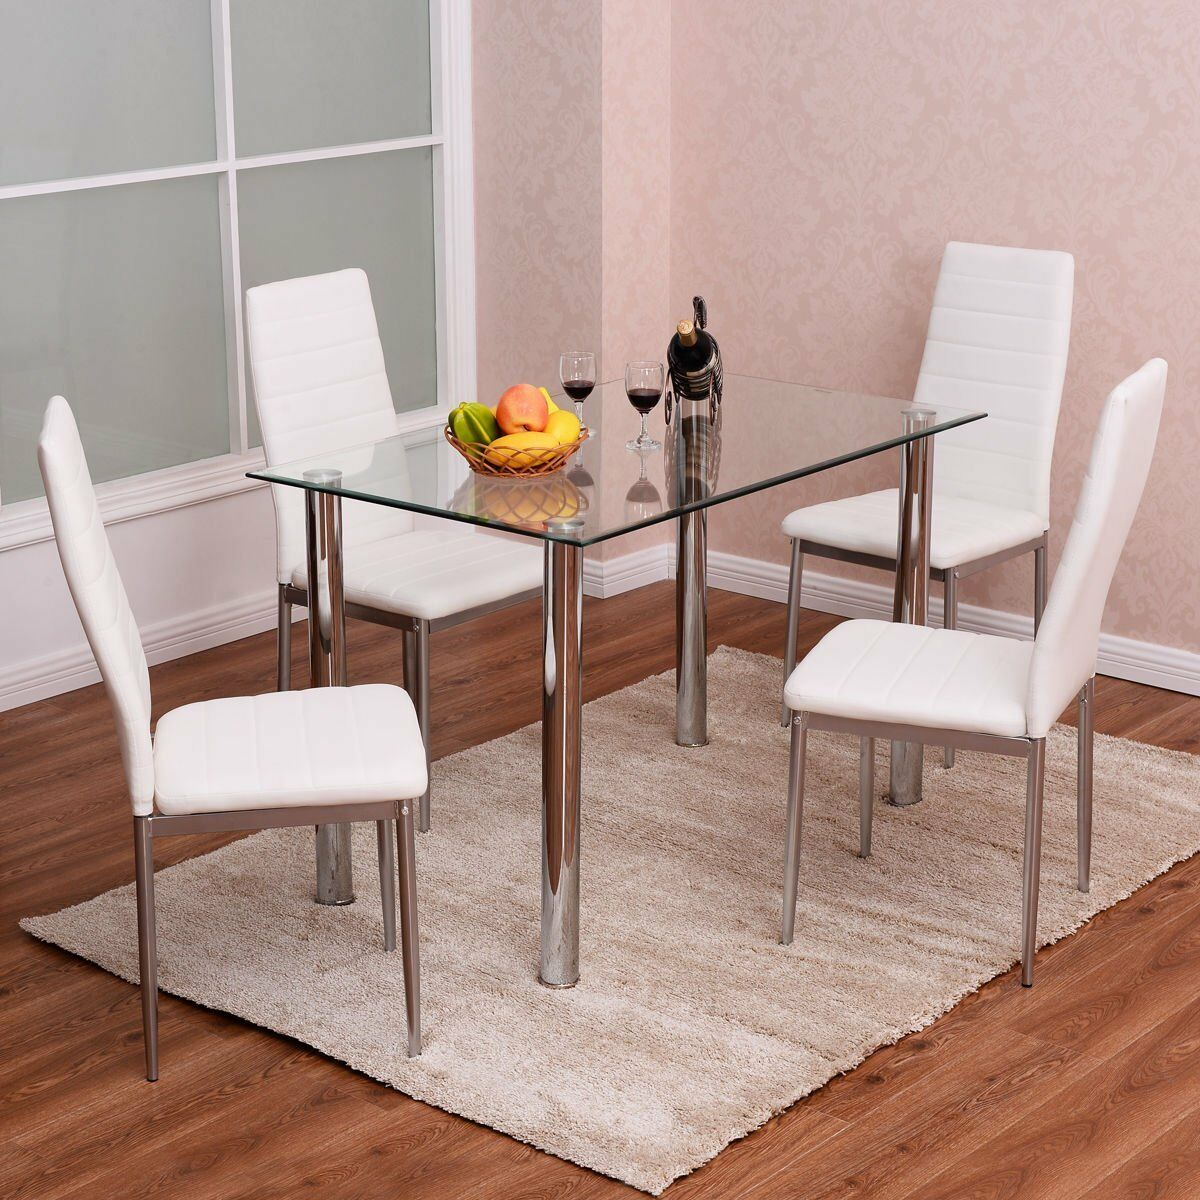 Details About 5 Piece Dining Table Set Glass Steel W 4 Chairs Kitchen Room Breakfast Furniture